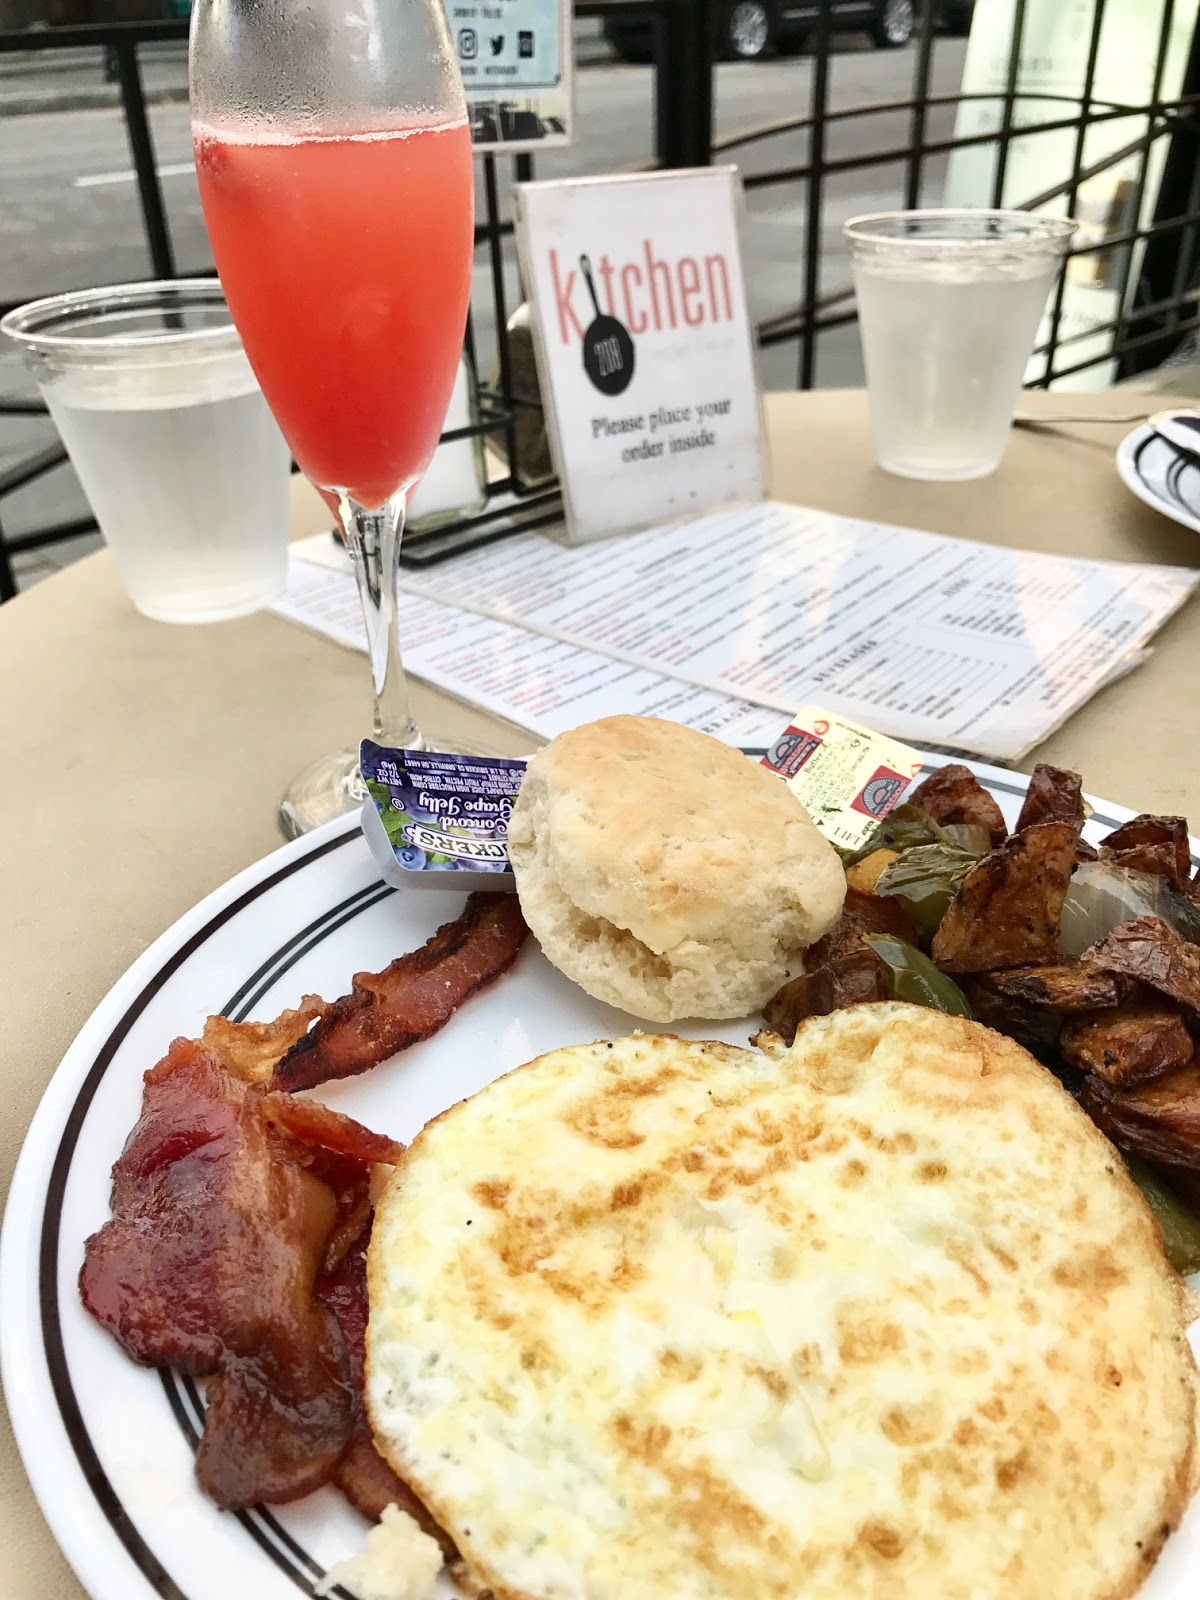 Bacon, eggs, biscuit and mimosa at Kitchen 208 in Charleston